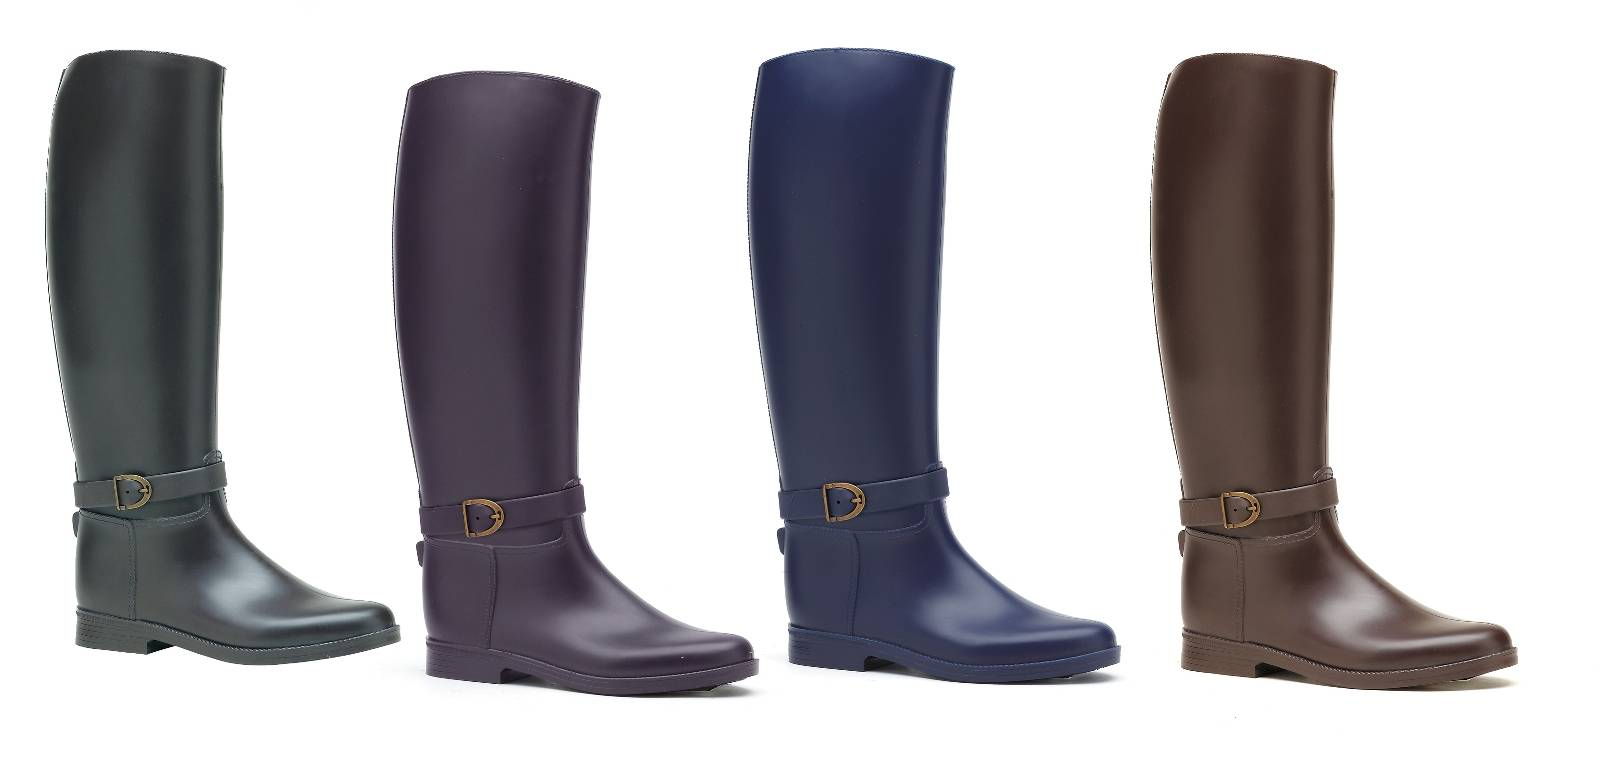 EquiStar Ladies' Paris Rubber Boot